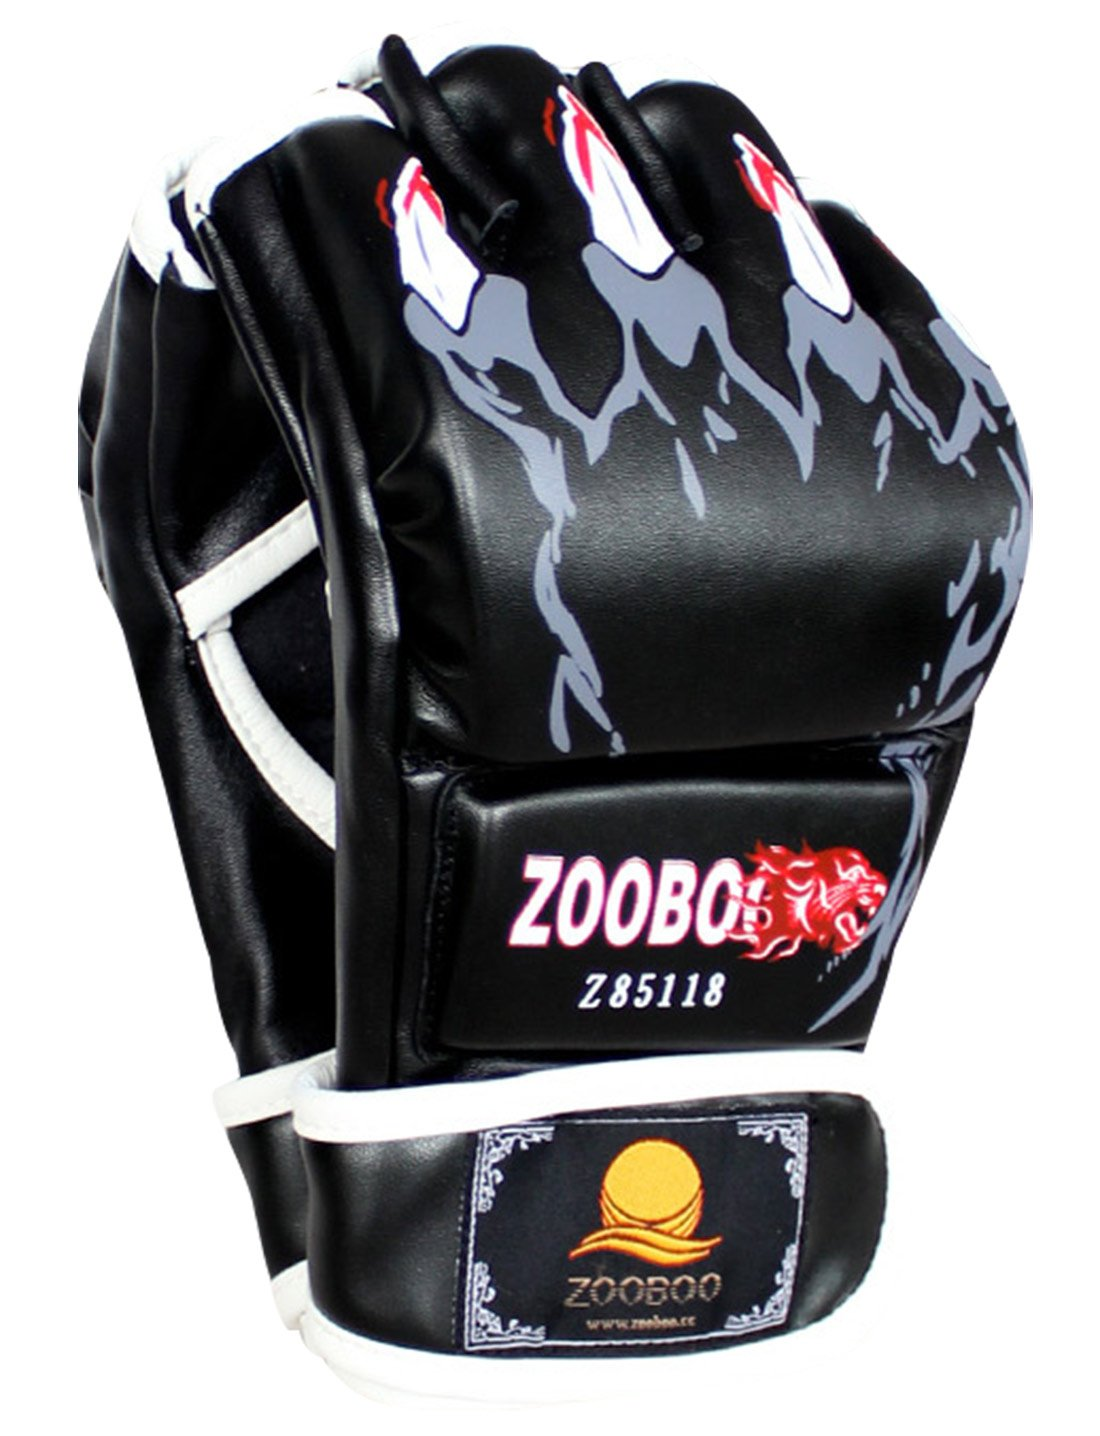 MMA Boxing Training Gloves Half Finger Grappling Martial Arts Sparring Punching Bag Cage Fighting Hide Leather Mitts UFC Combat - Black ZOOBOO